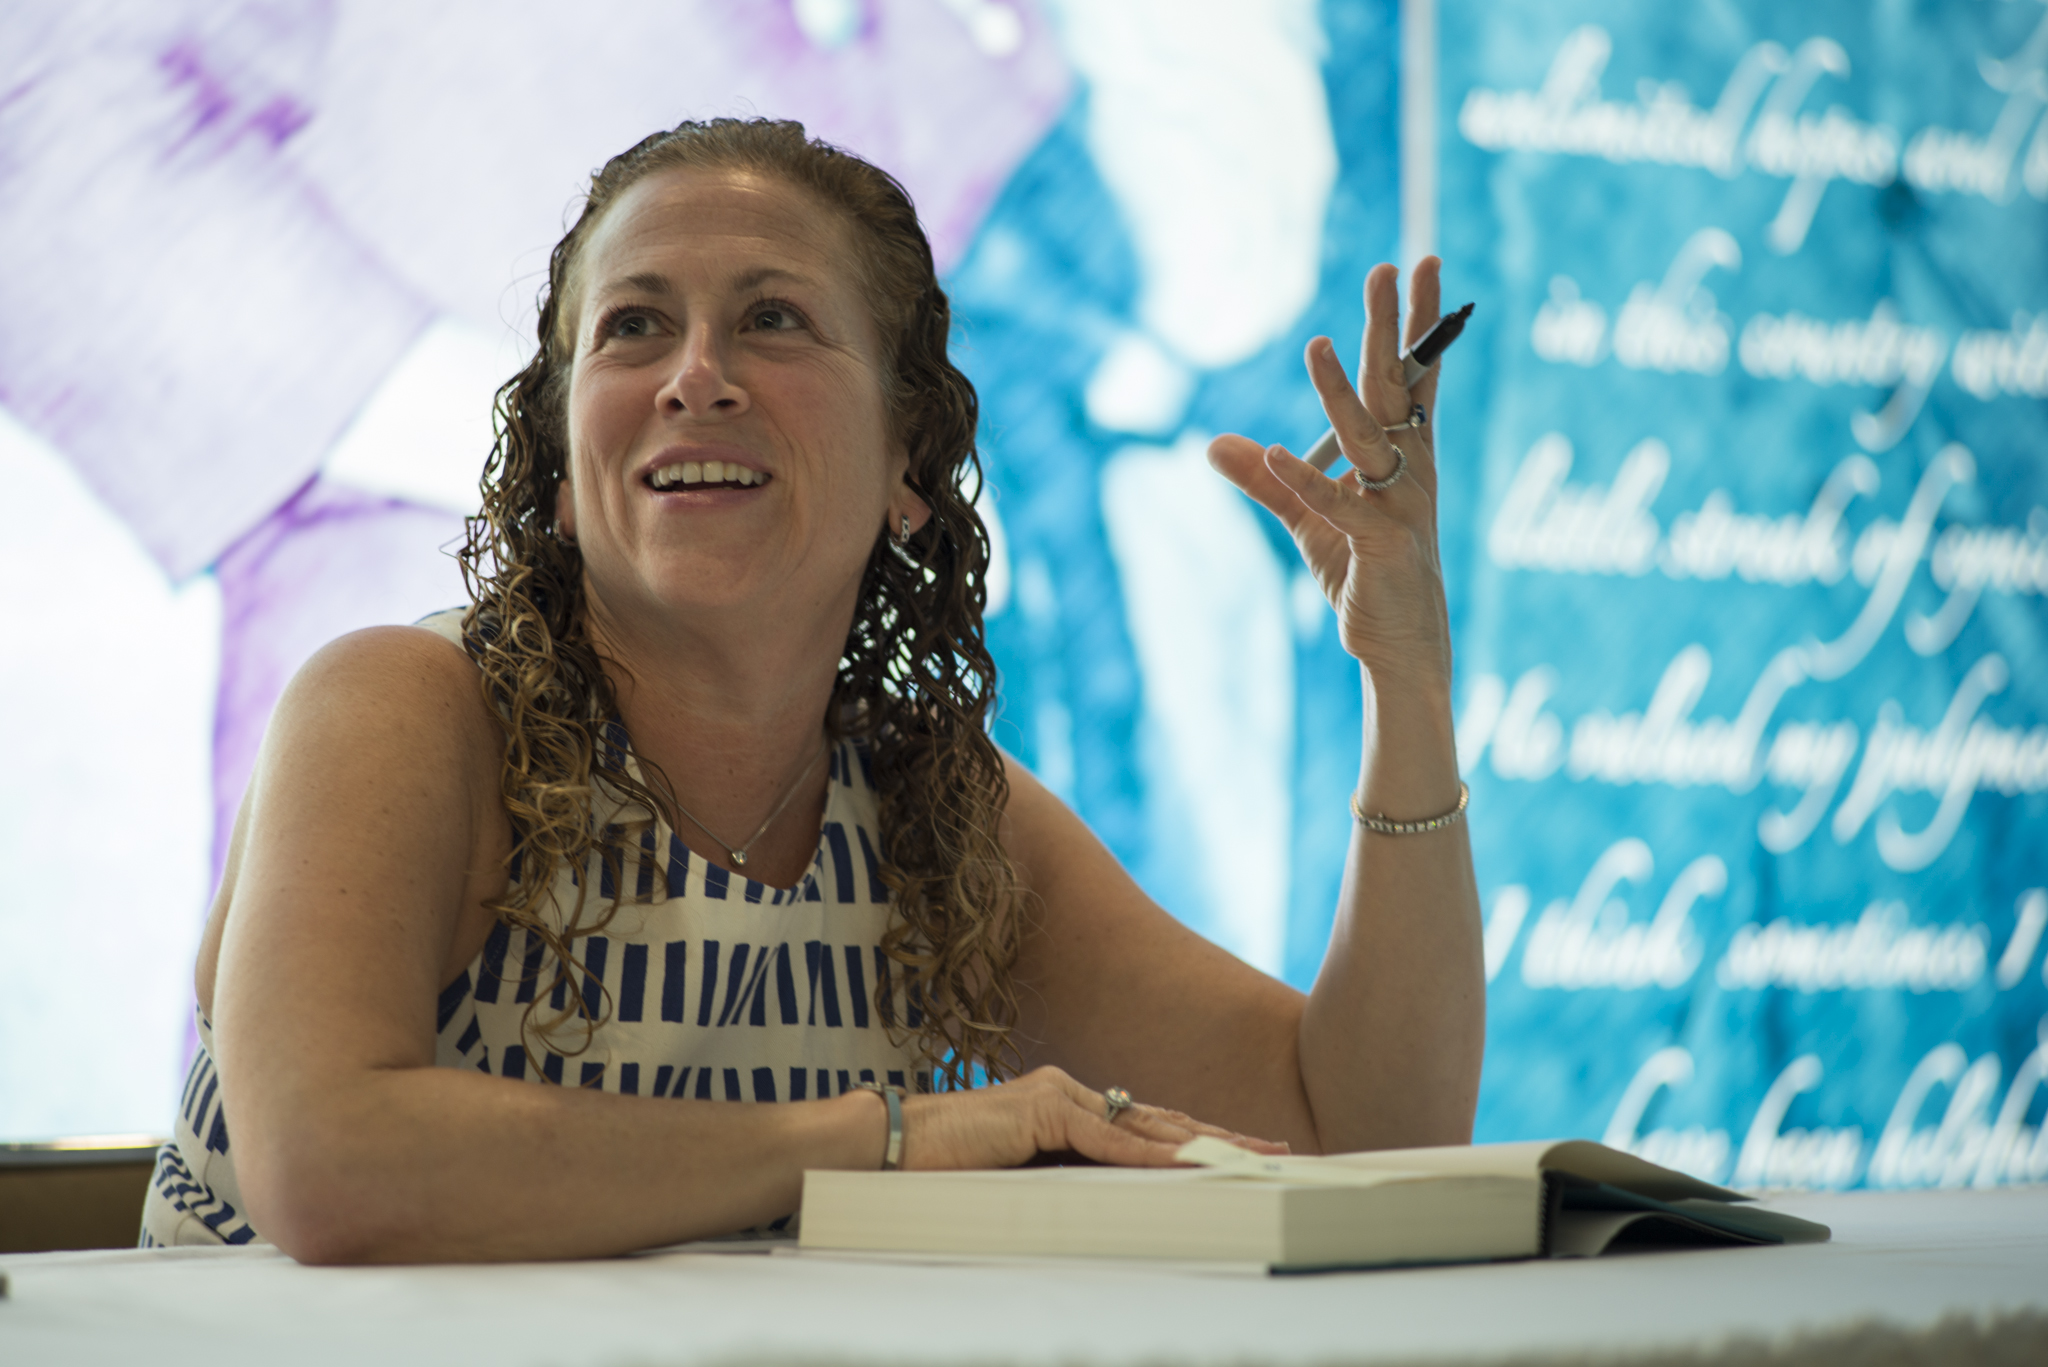 Jodi_Picoult_as_the_2013_Harry_Middleton_Lecturer_DIG13478-016.jpg